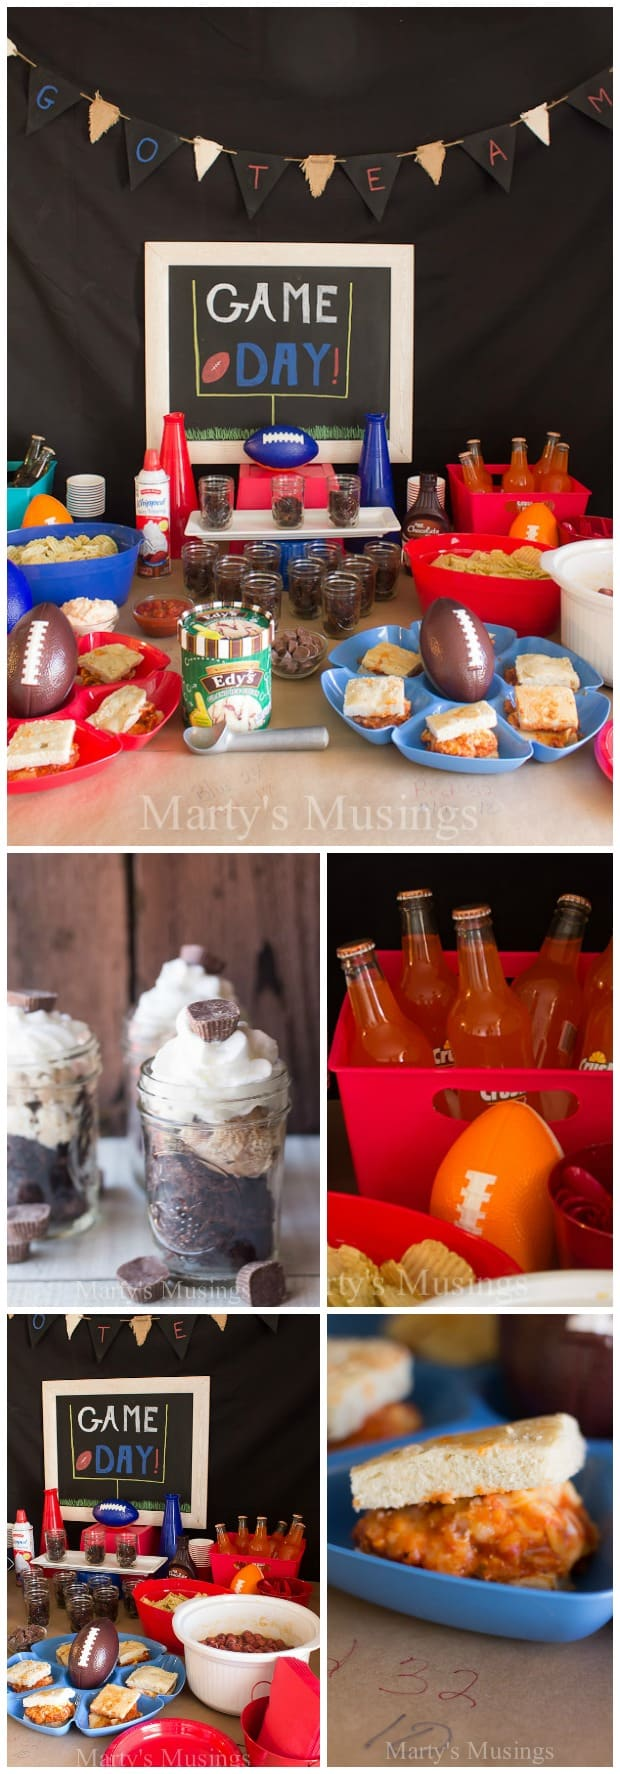 By using inexpensive dollar store football themed decorations and supplies, simple recipes and snacks, plus an easy fudge brownie recipe, your Super Bowl party will rock! #superbowl #football #dessert #party #entertaining #decorations #martysmusings